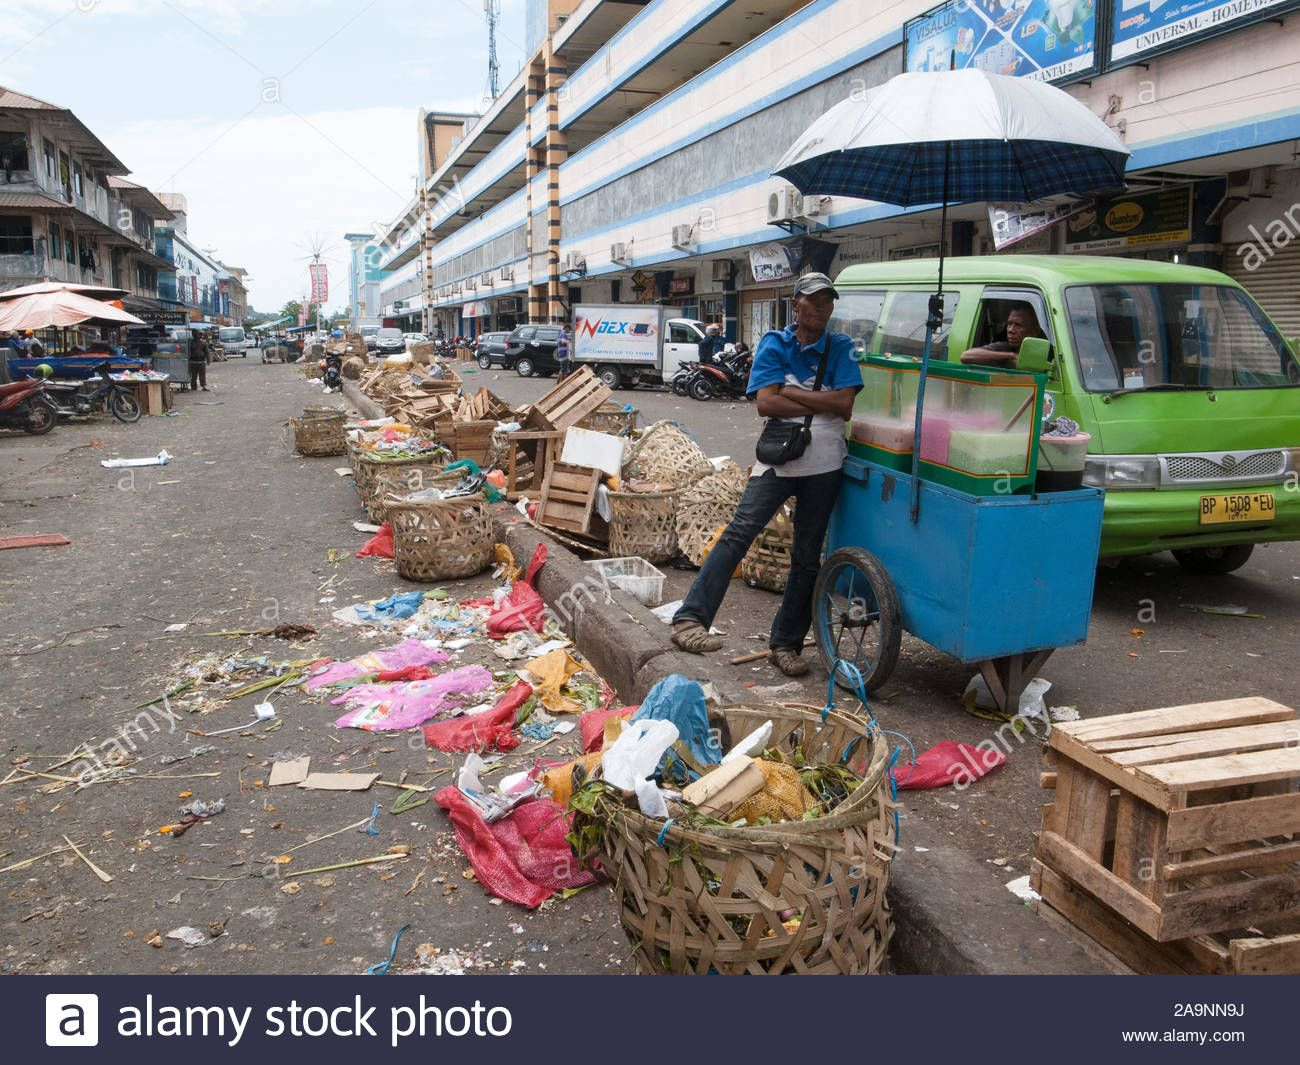 Download This Stock Image Batam Indonesia February 7 2015 People Activities At The Local Market In The Jodoh Area Of Batam Stock Photos Photo The Locals